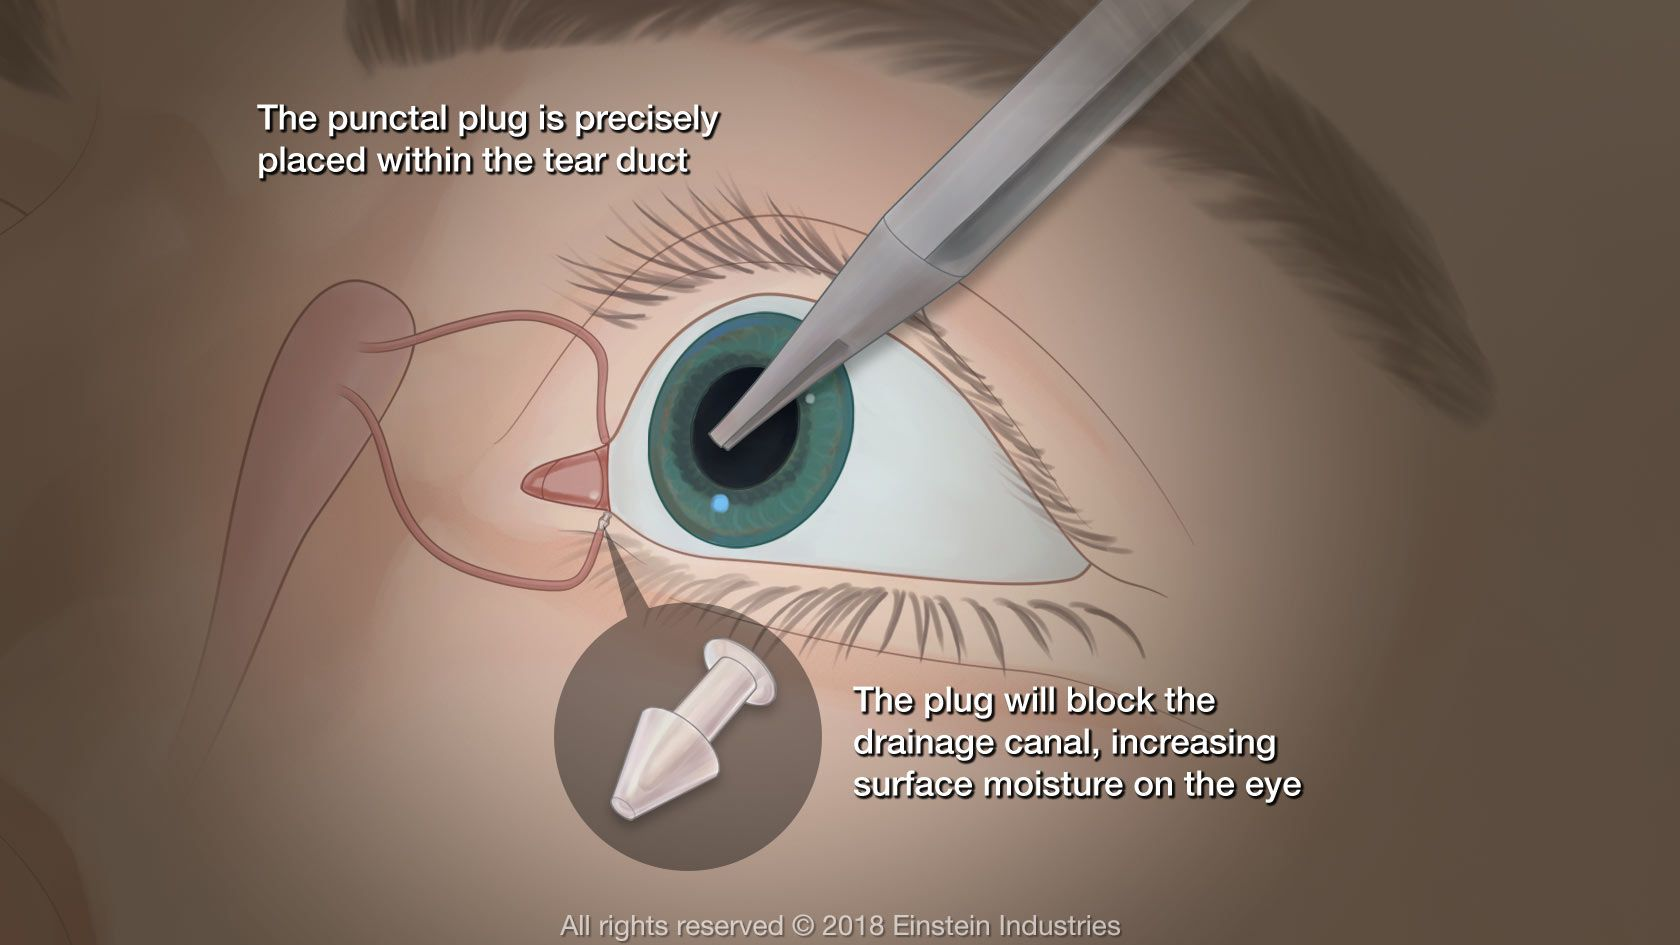 Diagram of punctal plug placement